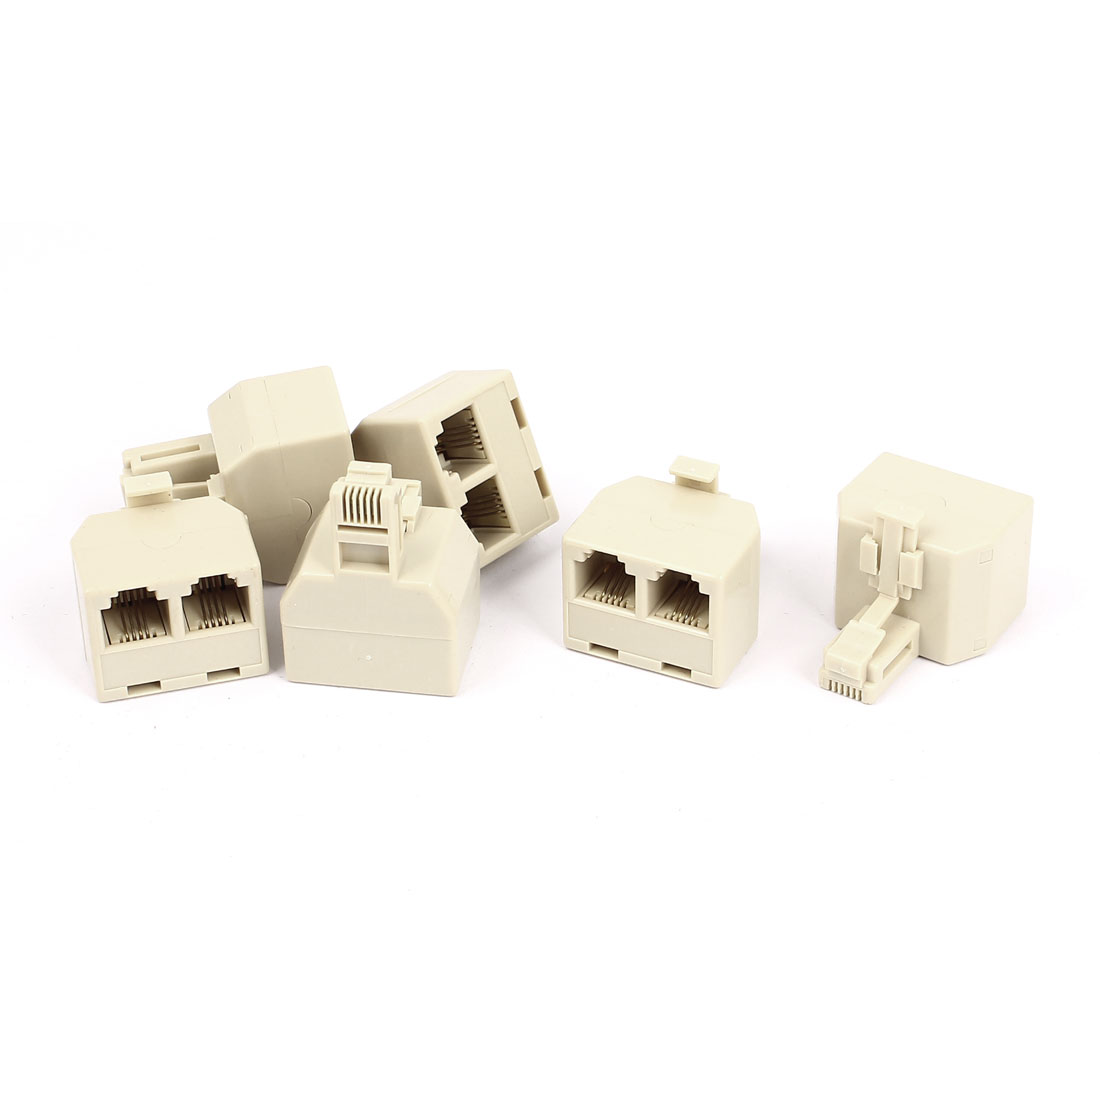 6pcs Beige Plastic Shell RJ45 6P4C Male to 2 Female Telephone Extension Connector Cable Splitter